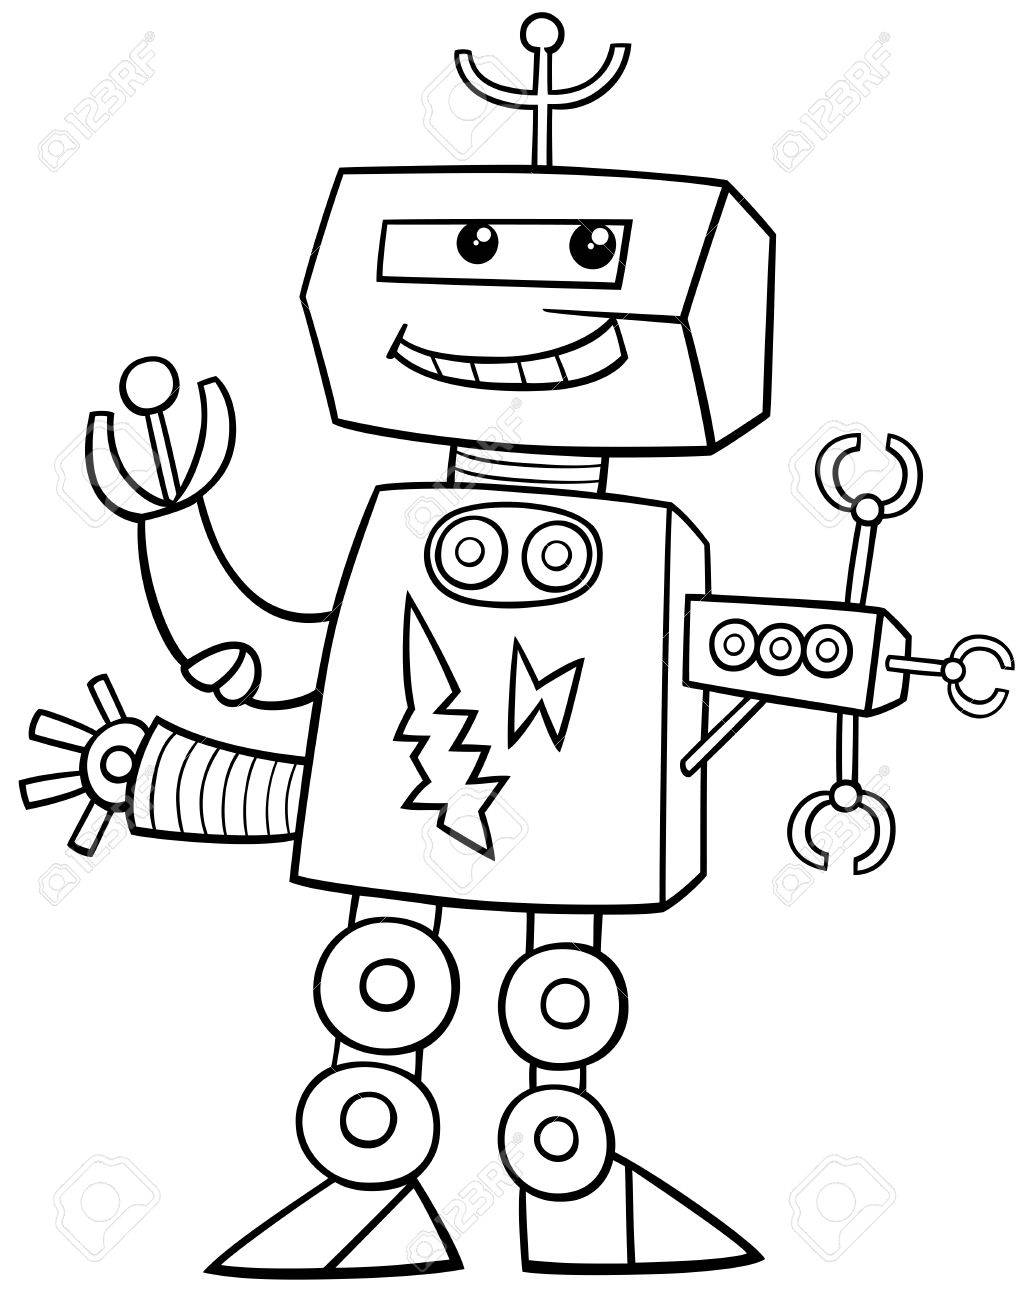 black and white cartoon illustration of robot science fiction